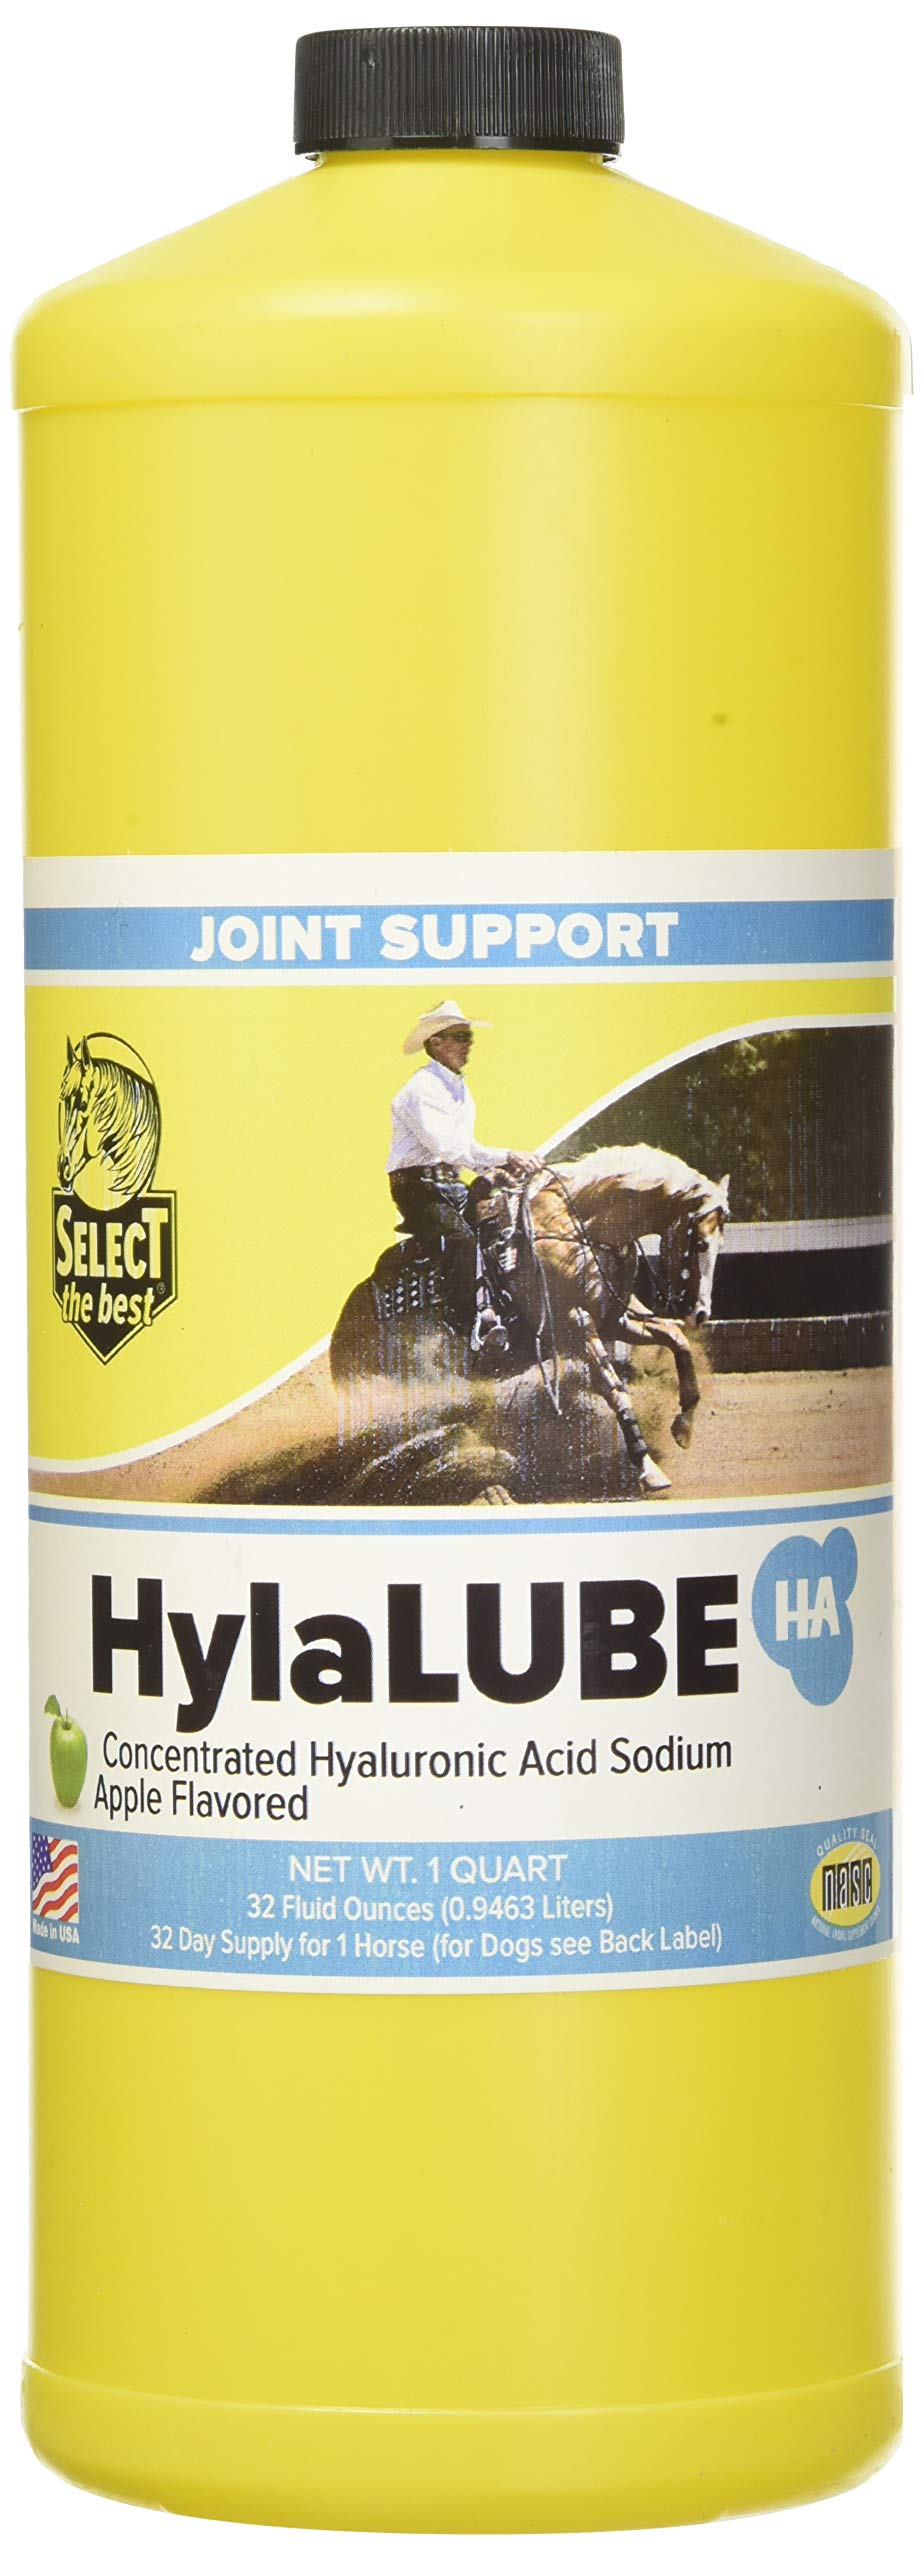 RICHDEL HylaLube, 1 Quart, Concentrated Hyaluronic Acid Sodium Animal Joint Support Supplement